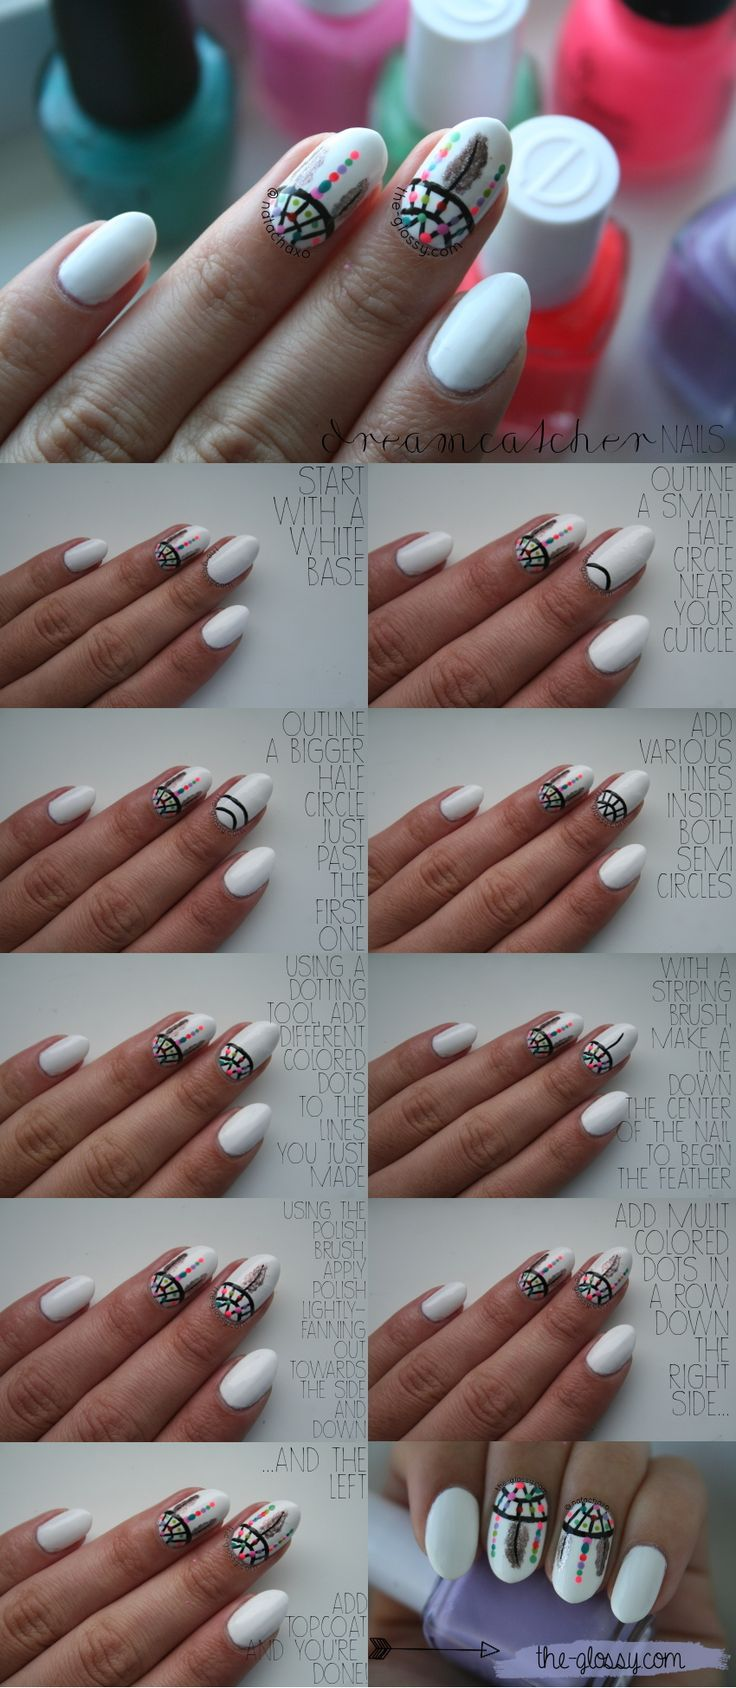 Wow! Really cool dream catcher nail art... I have a feeling this would take a long time!